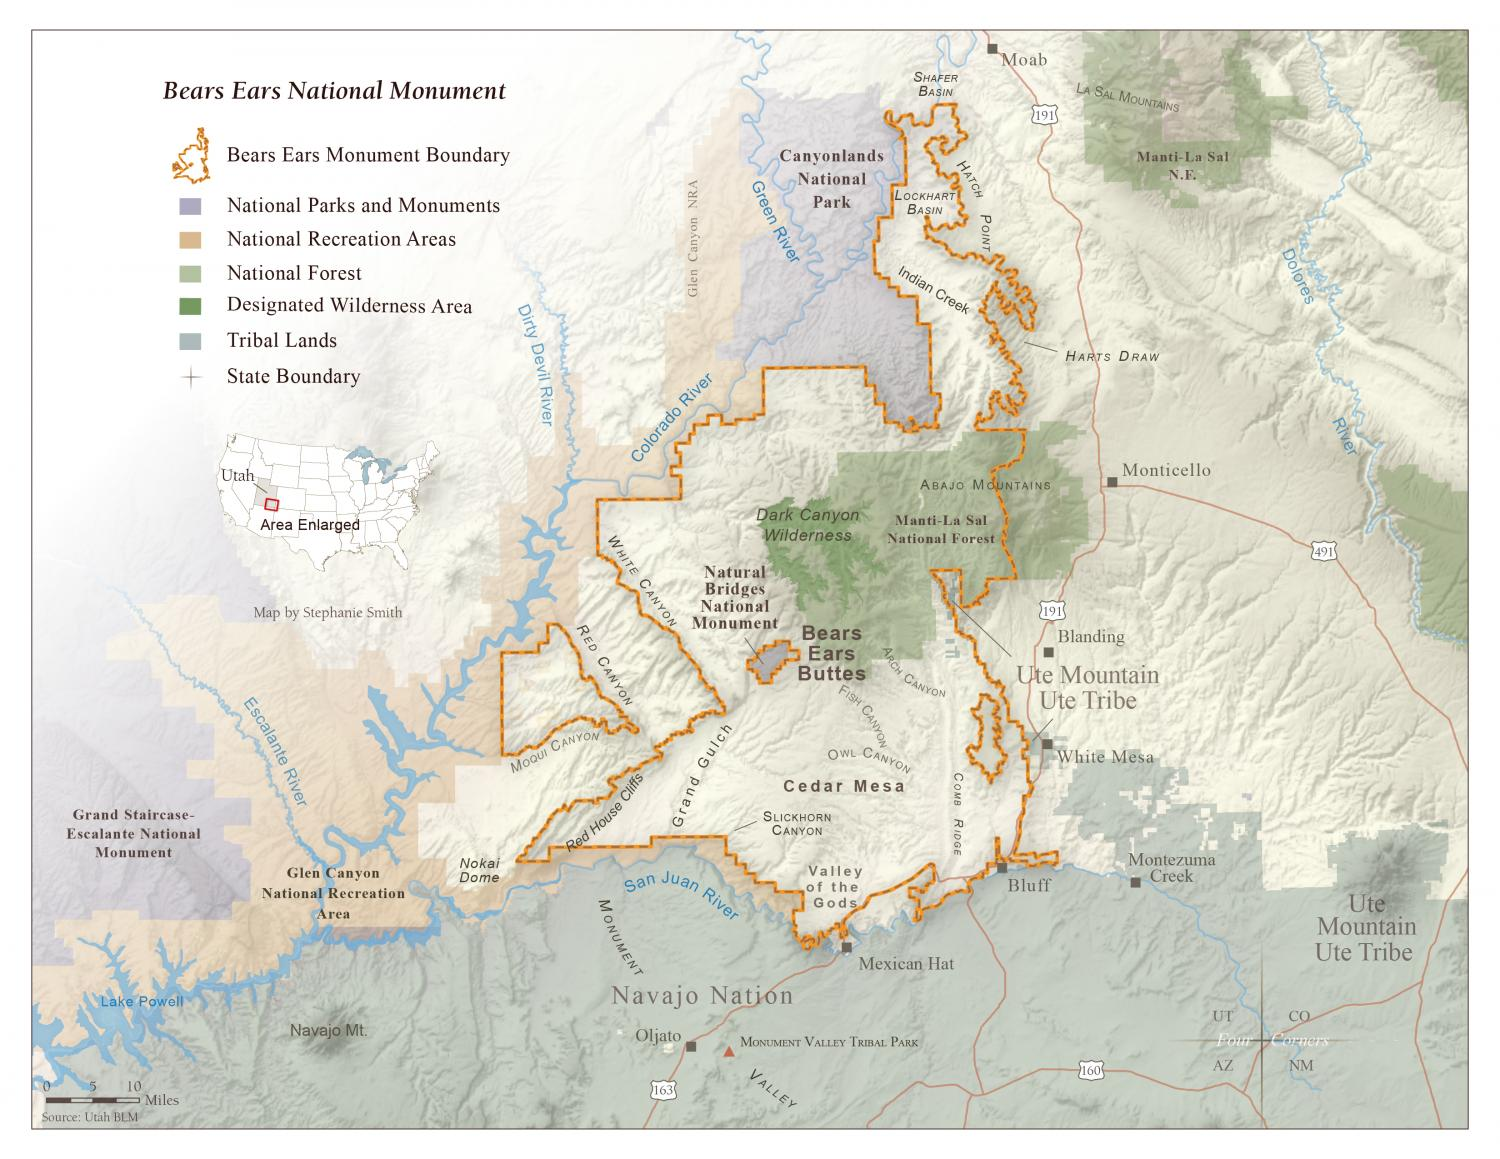 Bears Ears Utah Map Bears Ears National Monument Map | Grand Canyon Trust